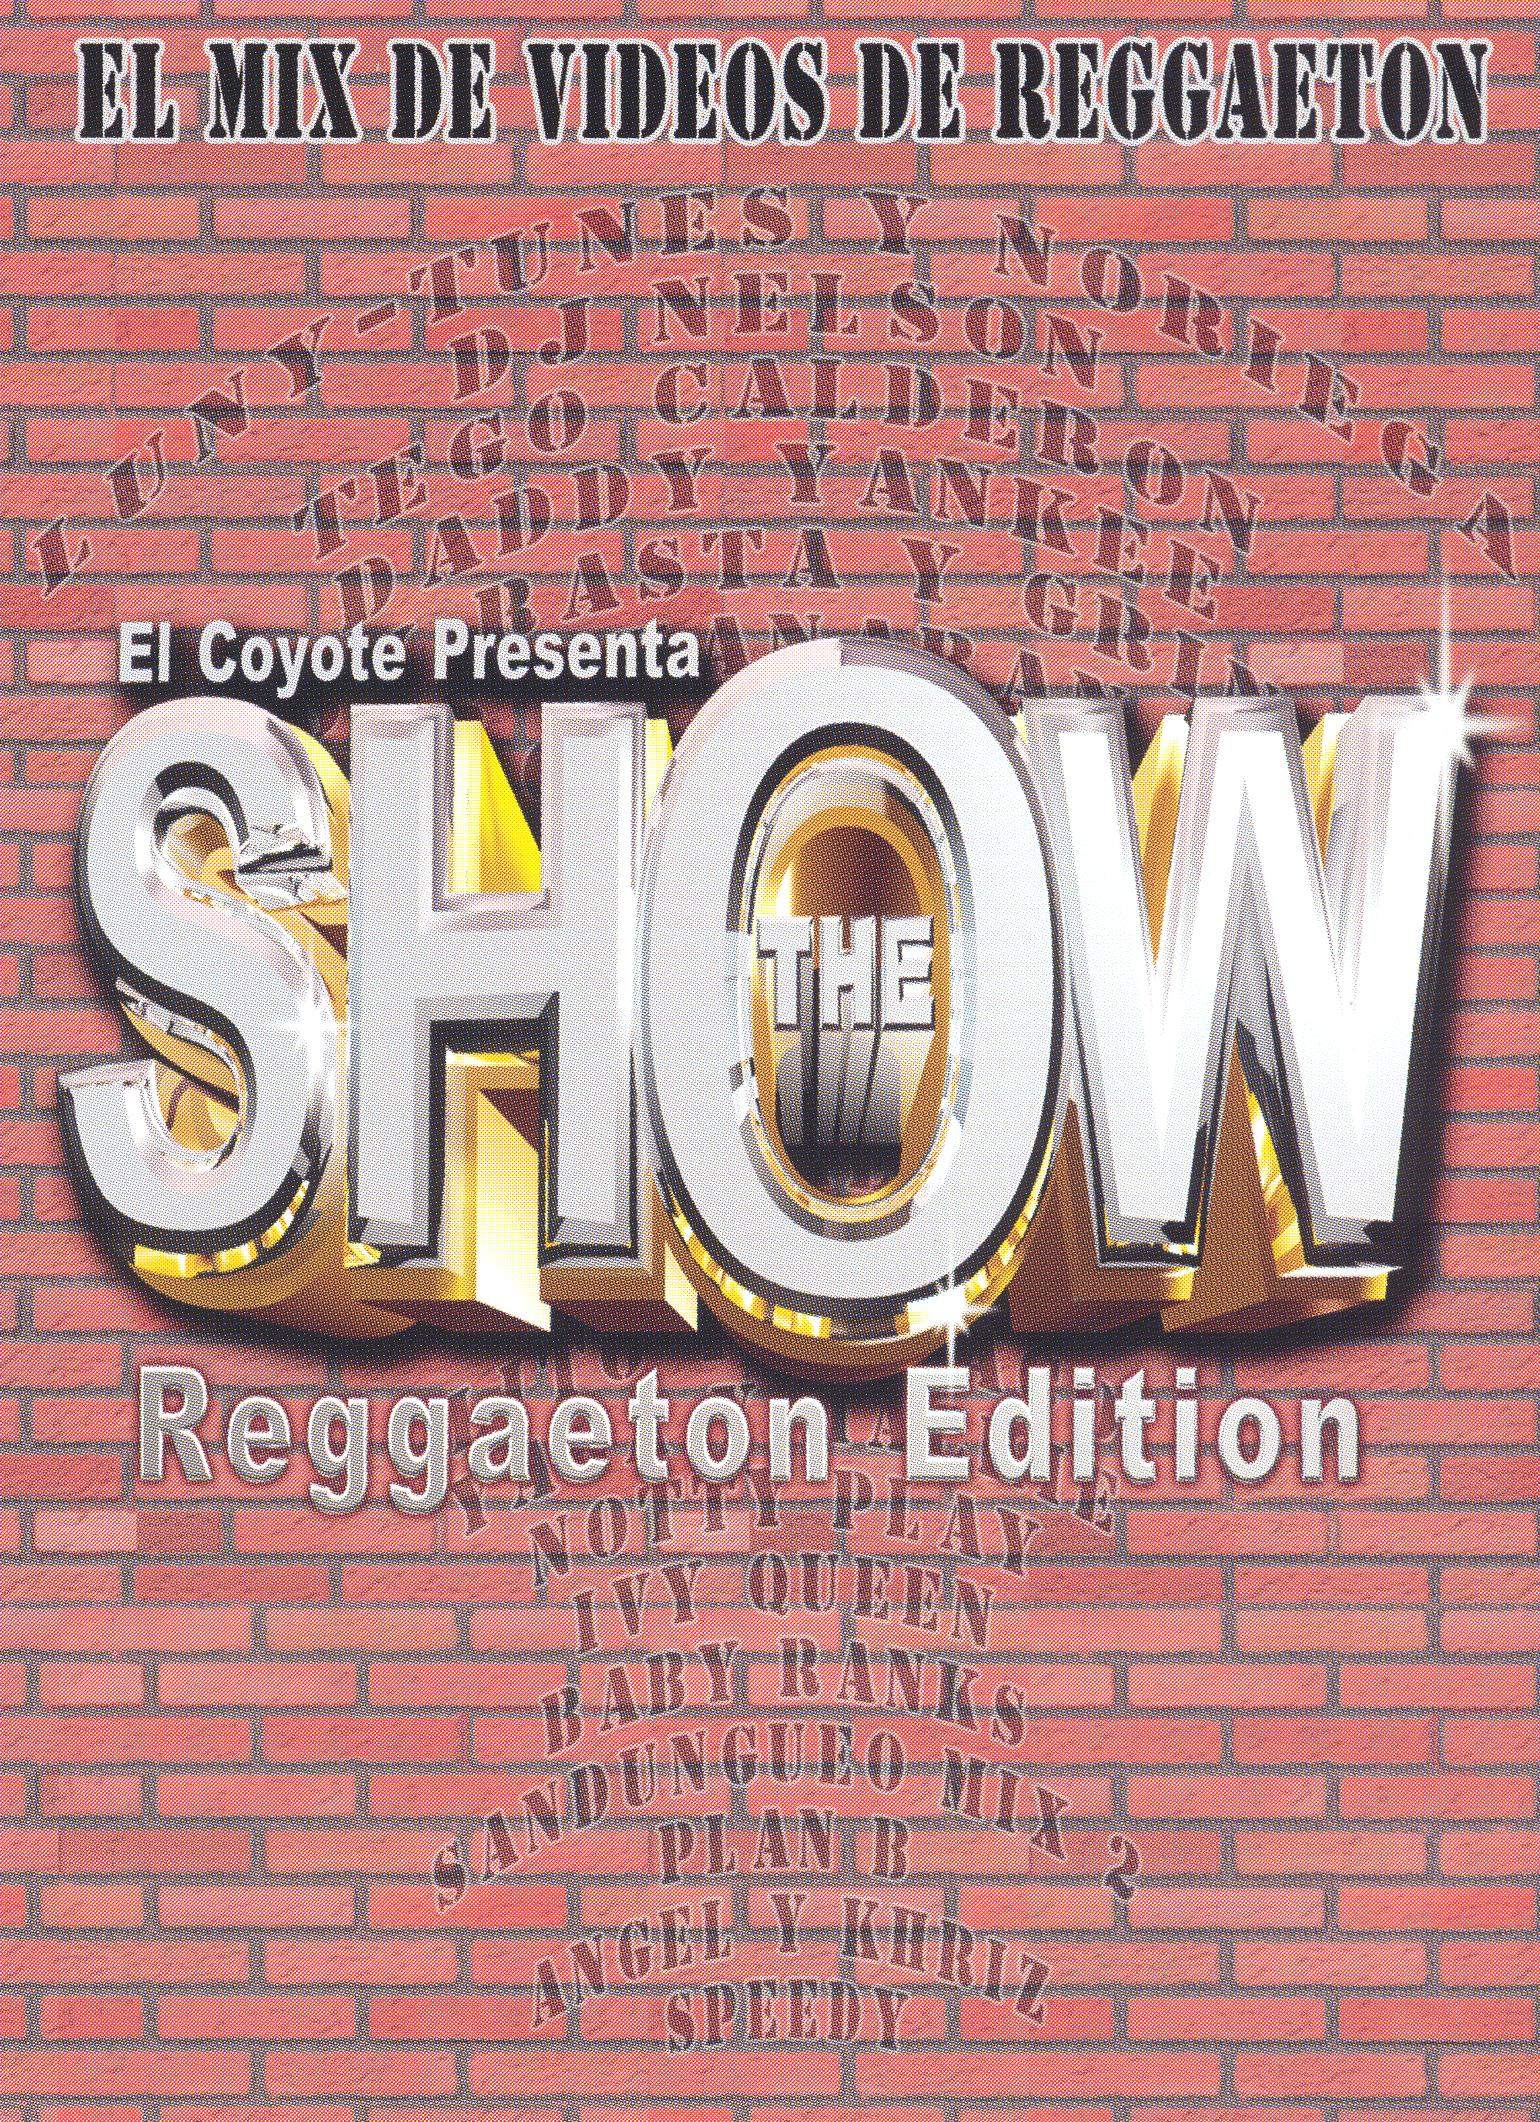 The Show: Reggaeton Edition